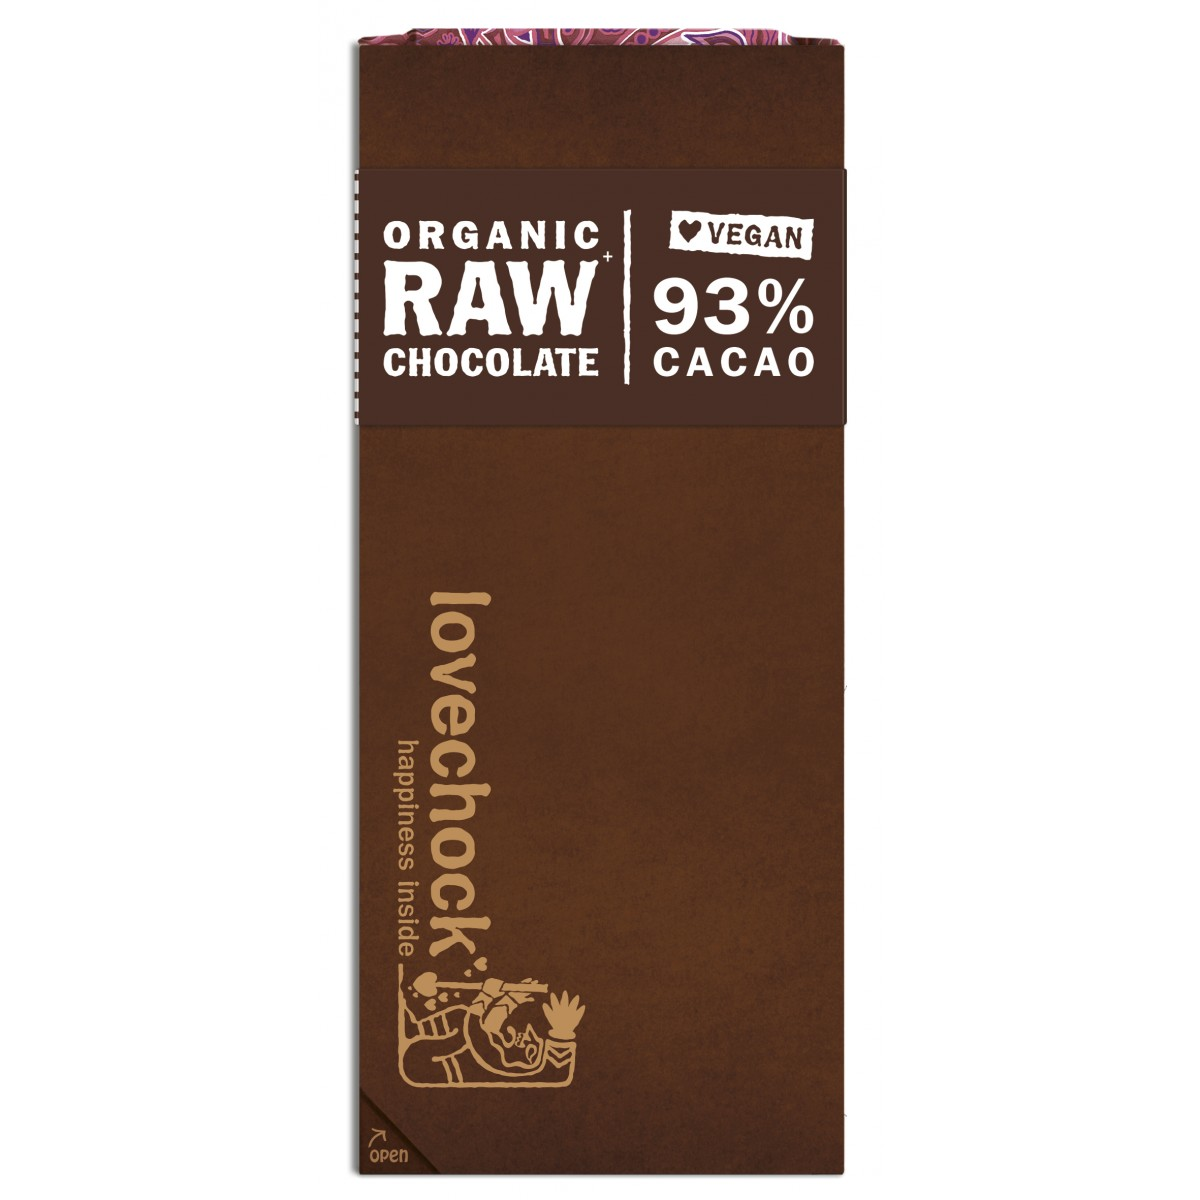 Chocoladetablet 93% Cacao